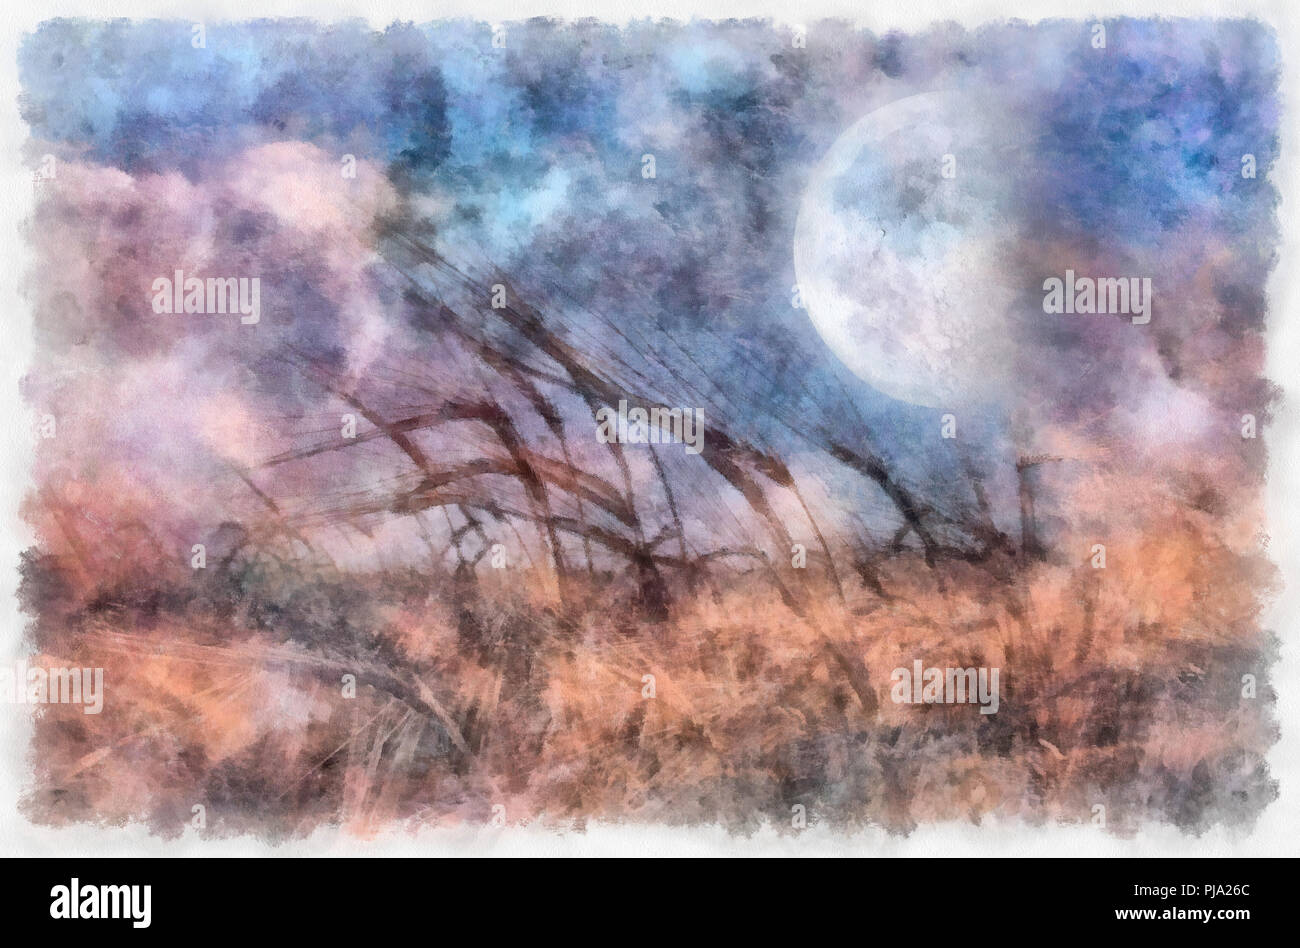 Surreal painting. Field of wheat, full moon in the sky. - Stock Image